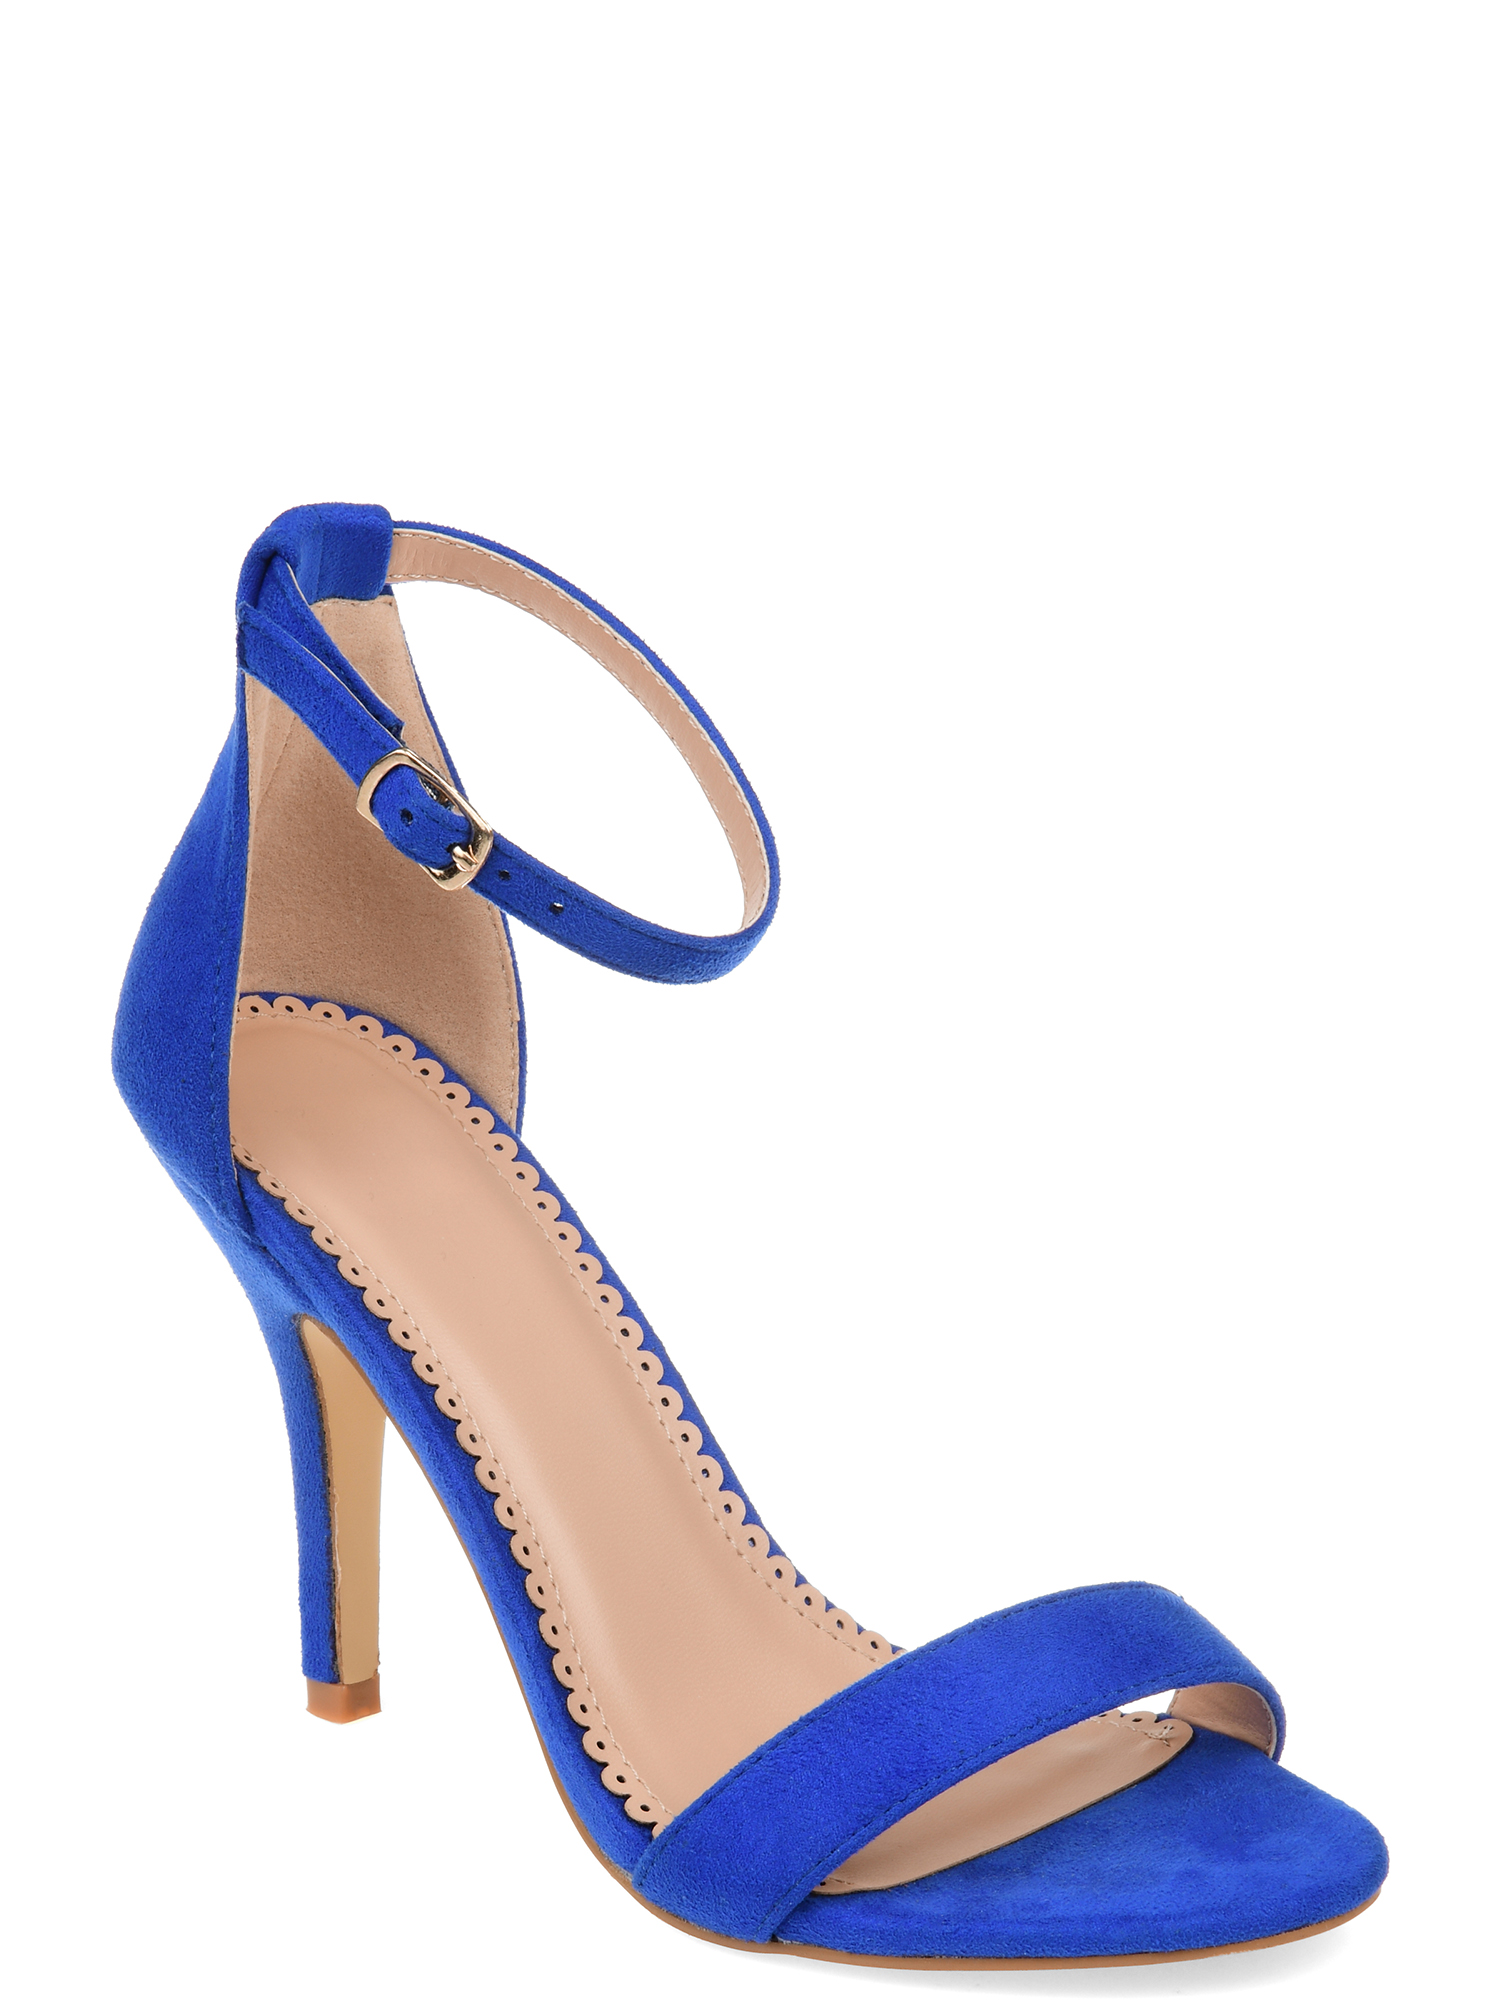 Womens Open-toe Pump